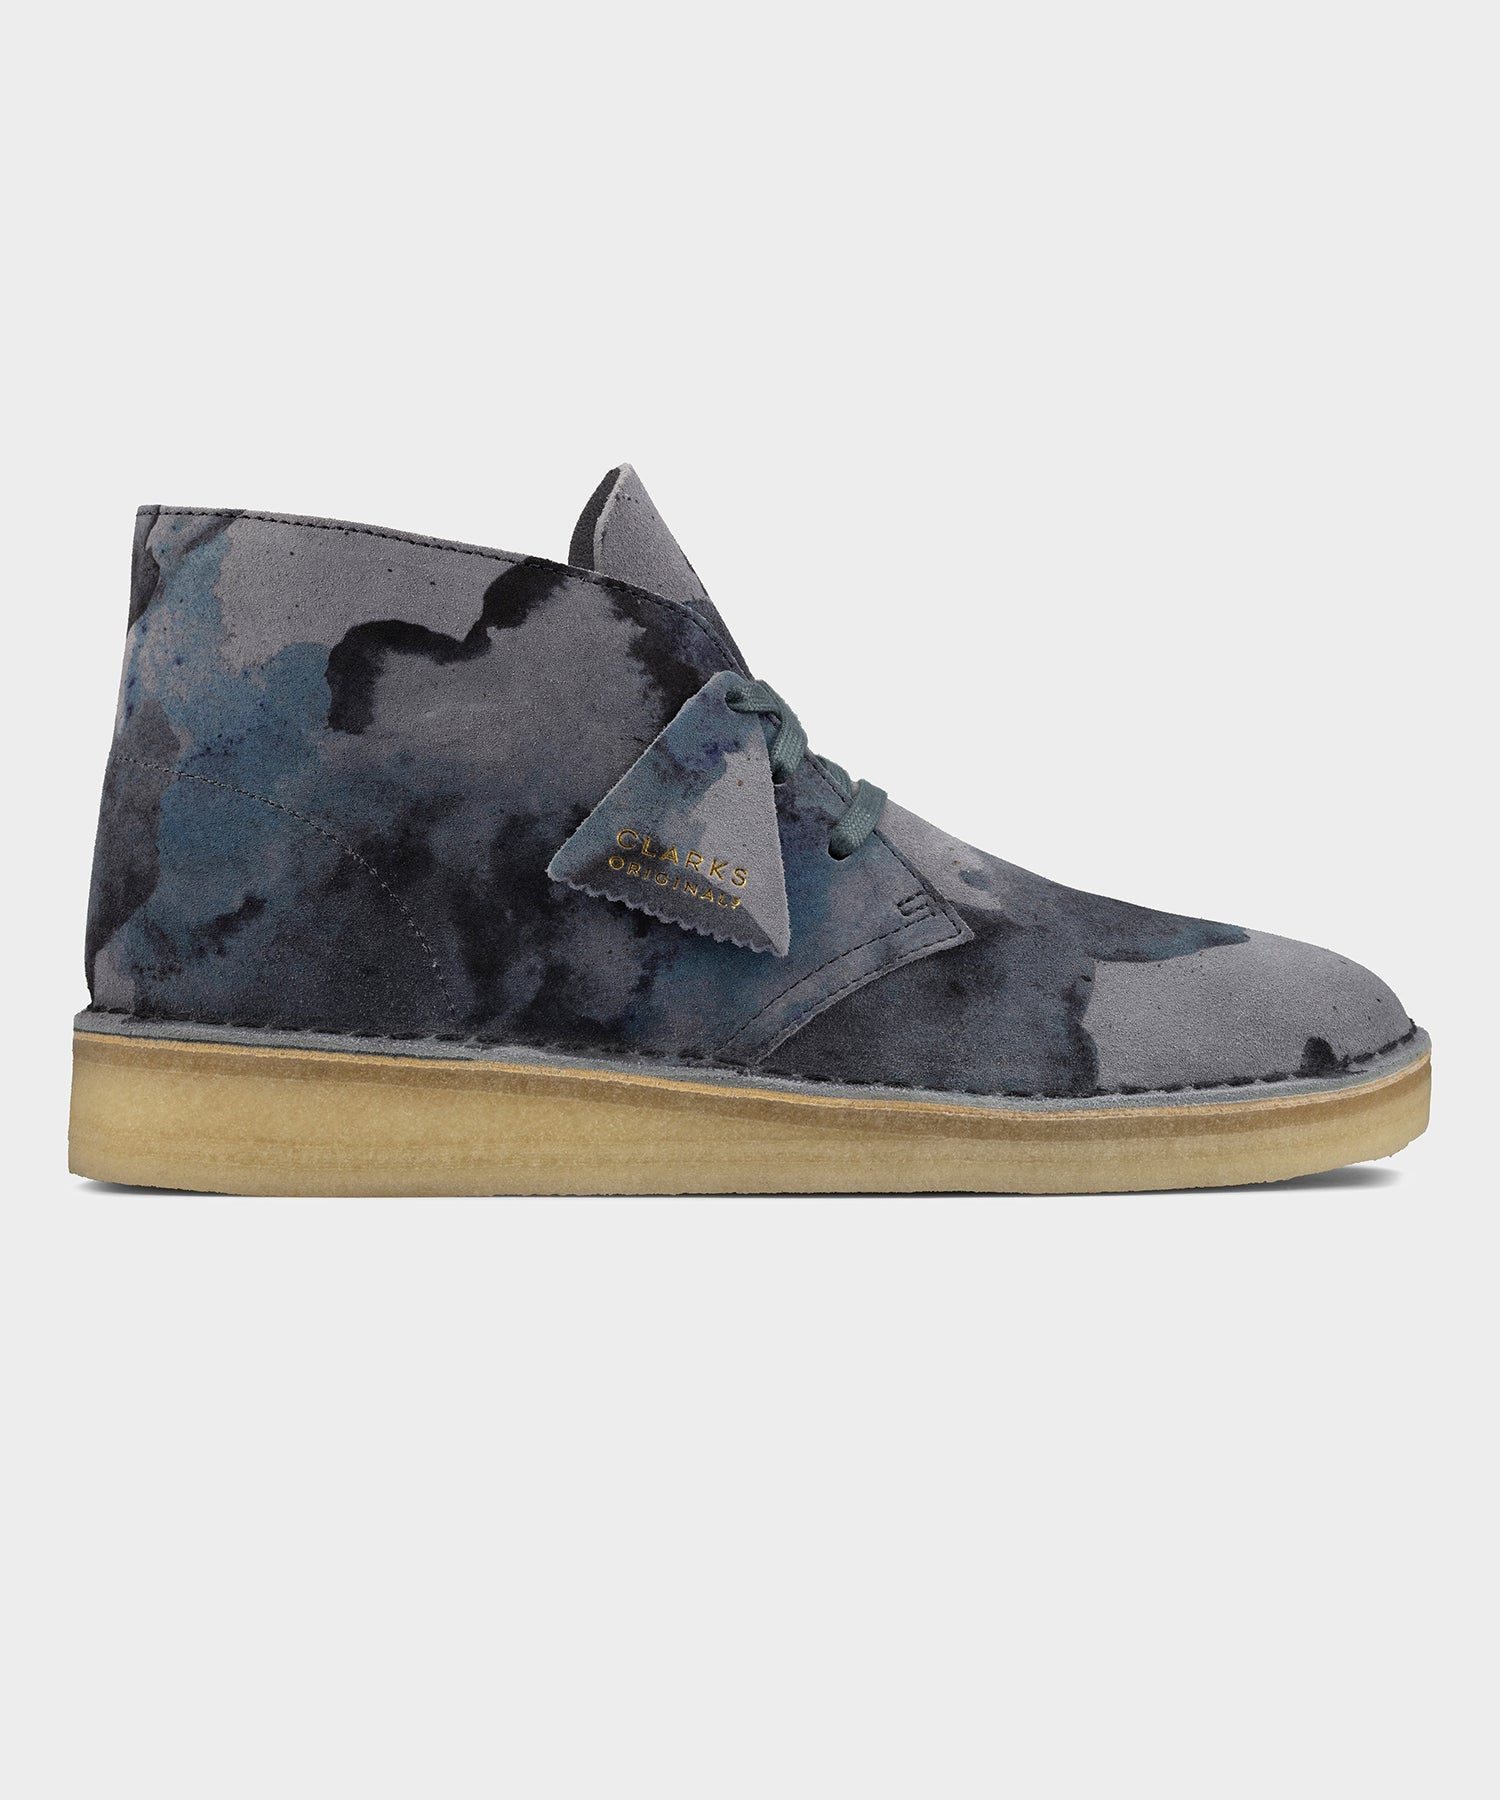 Clarks Desert Coal in Blue Camo